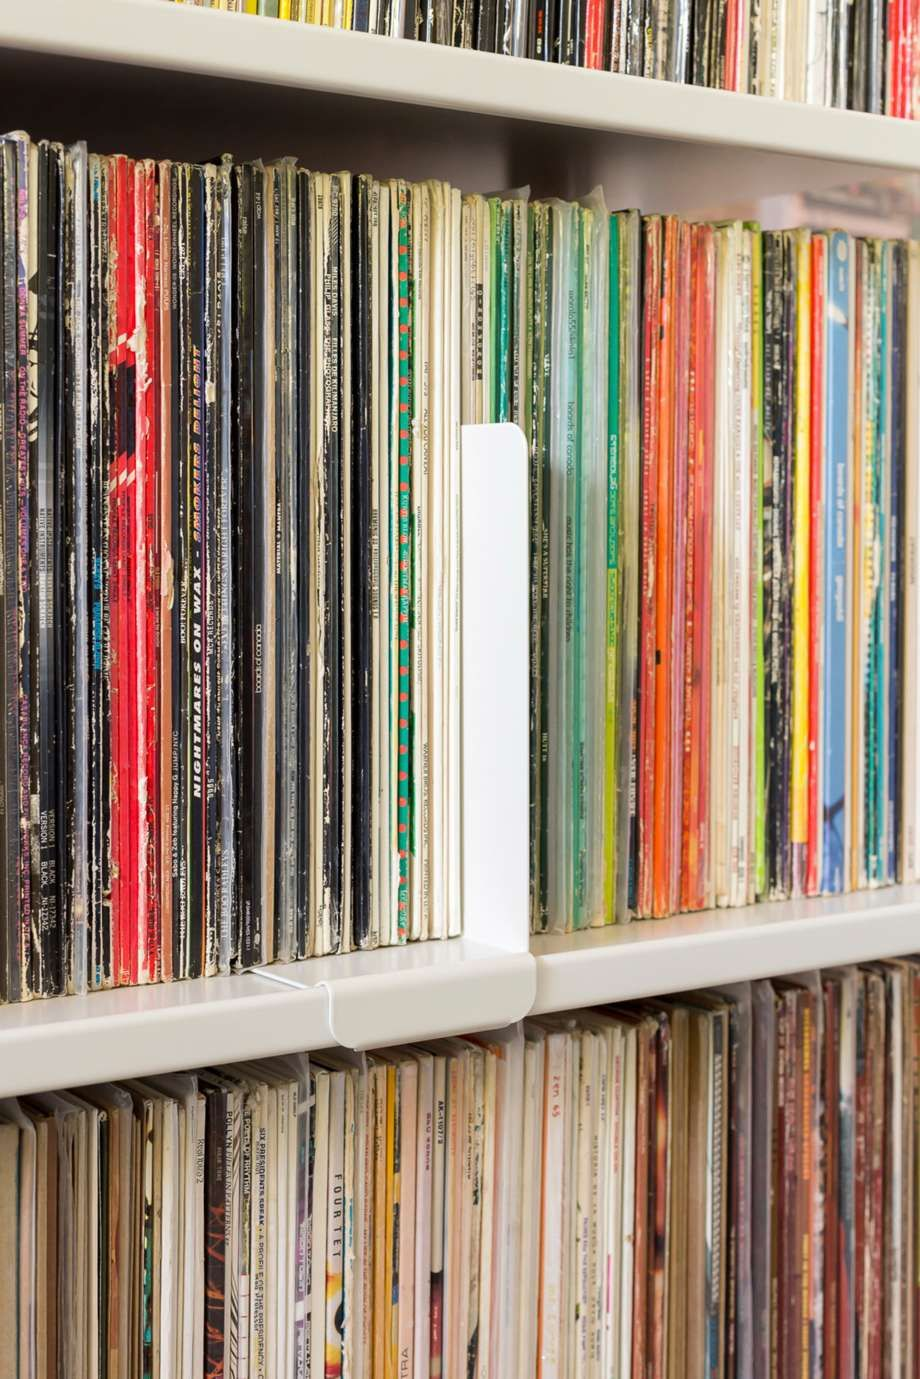 Bookends Are Useful For Segregating Categories, Or For Stopping The Weighty  LPs From Falling Over